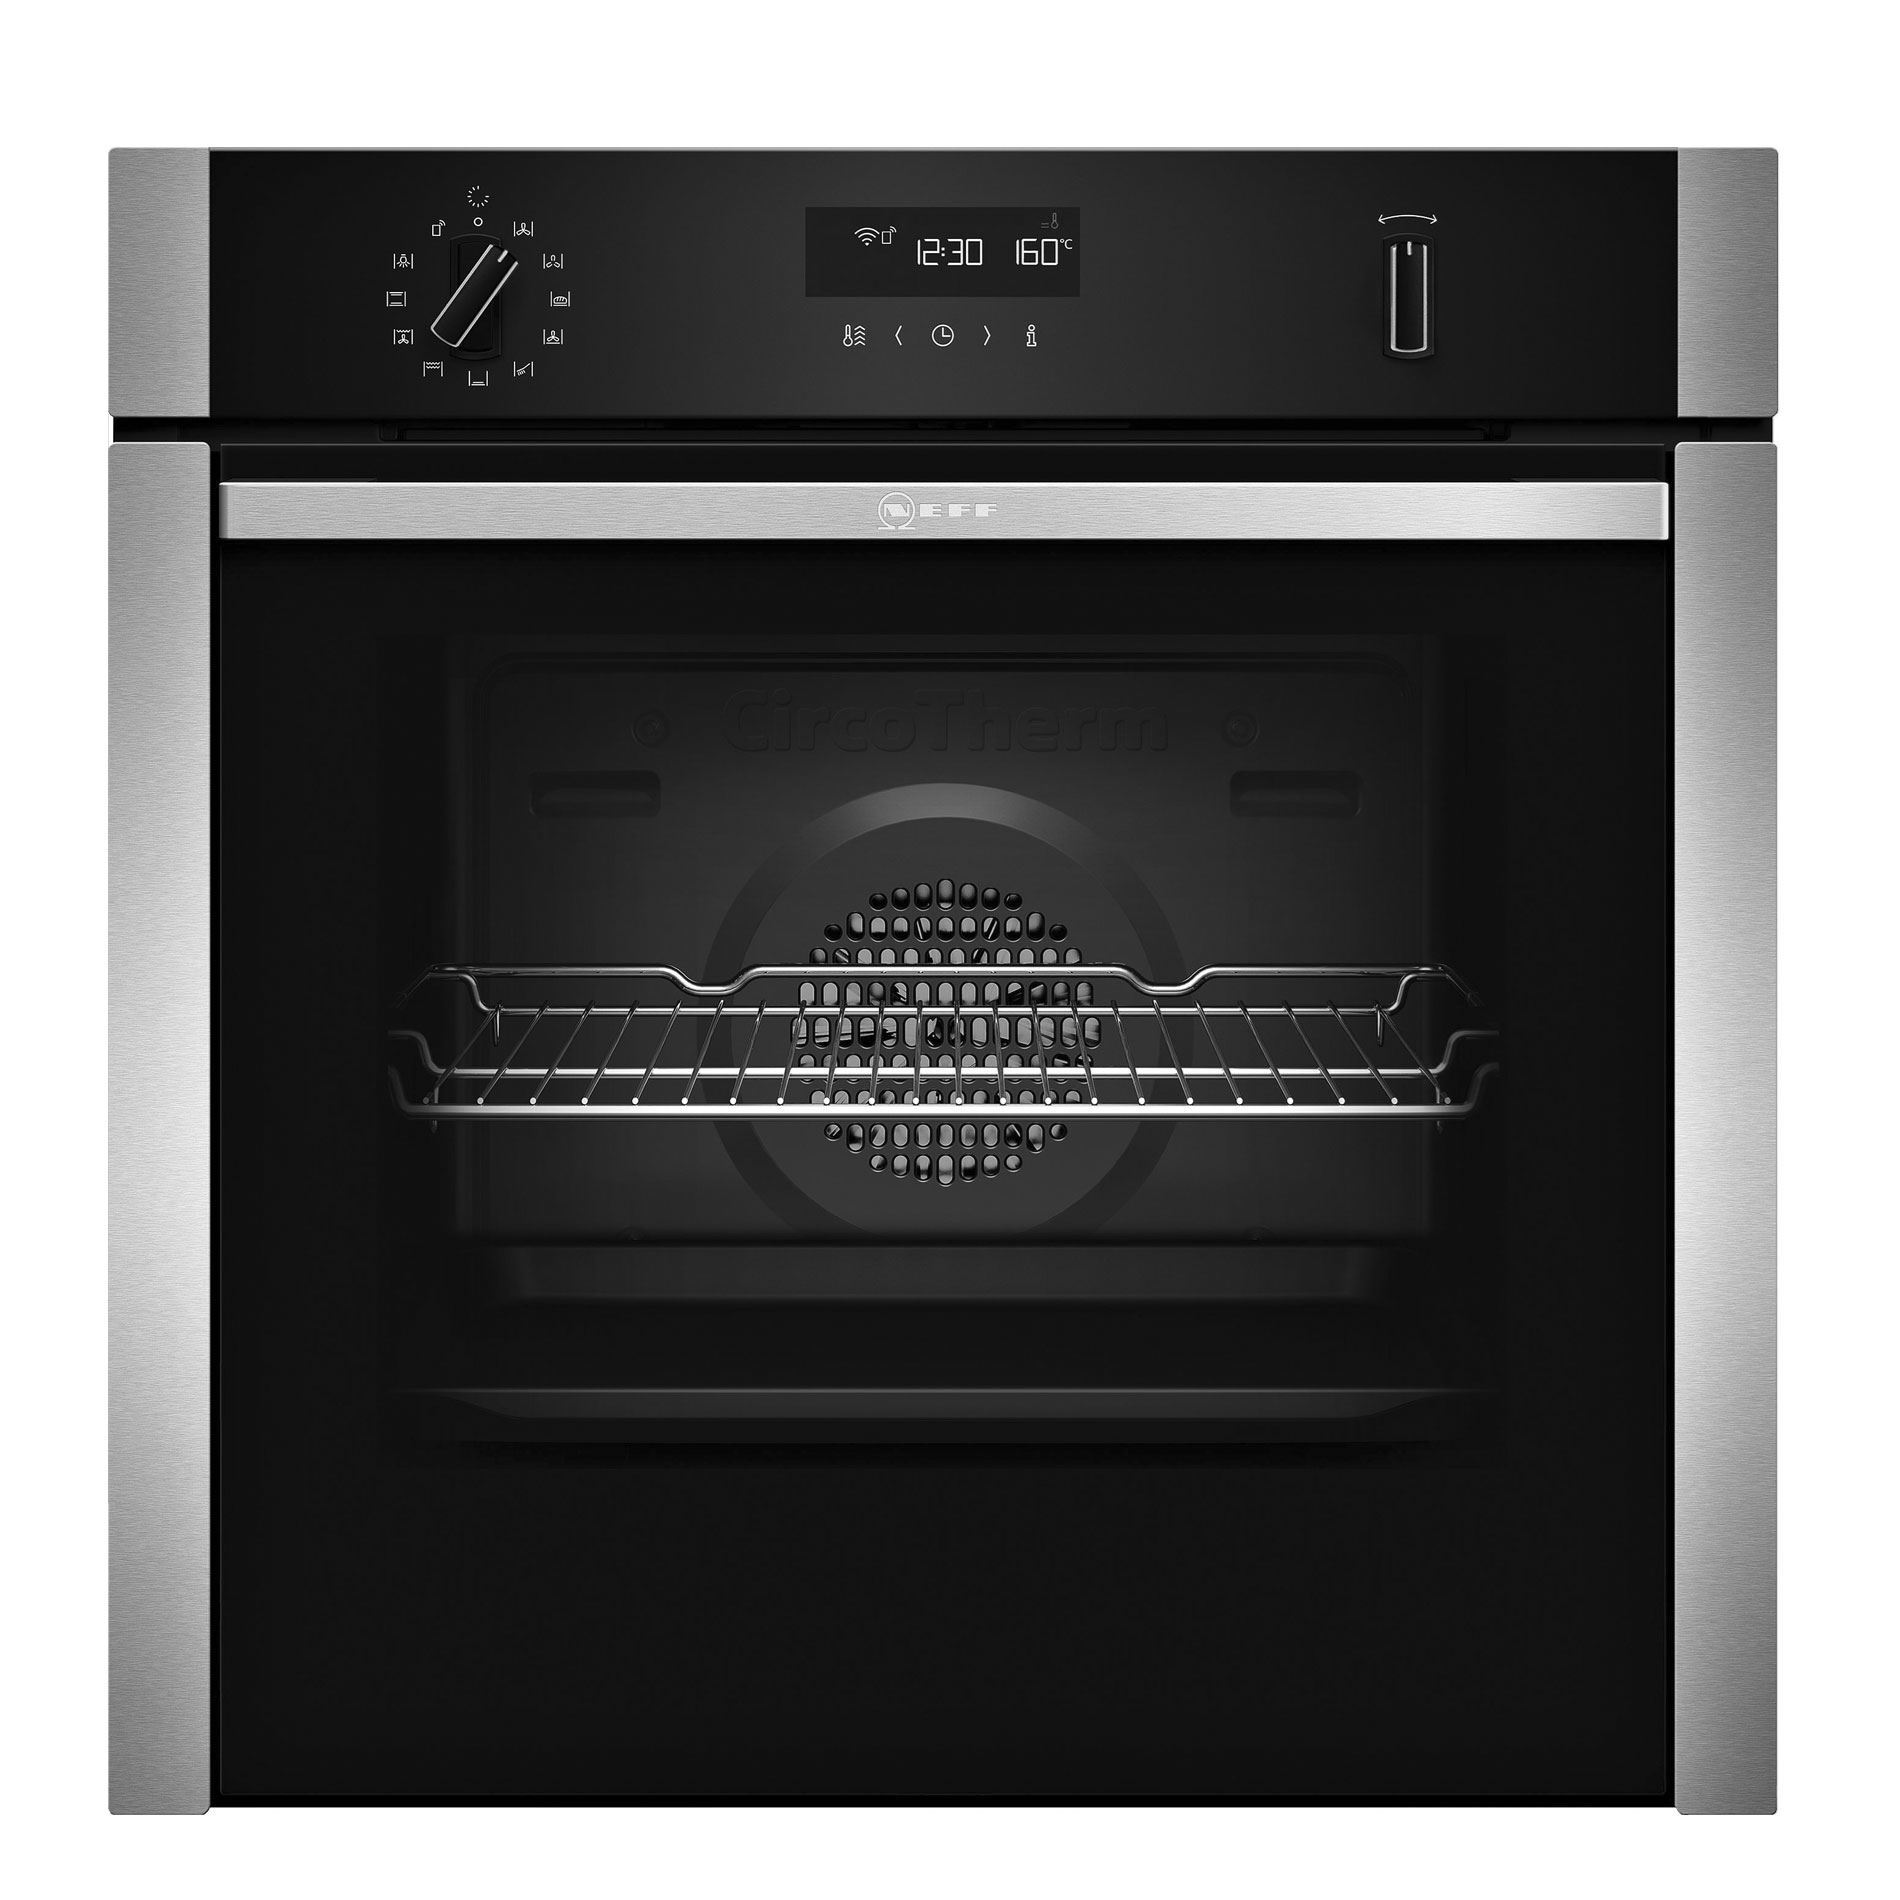 Picture of B5ACM7HH0B Built-in Single Oven